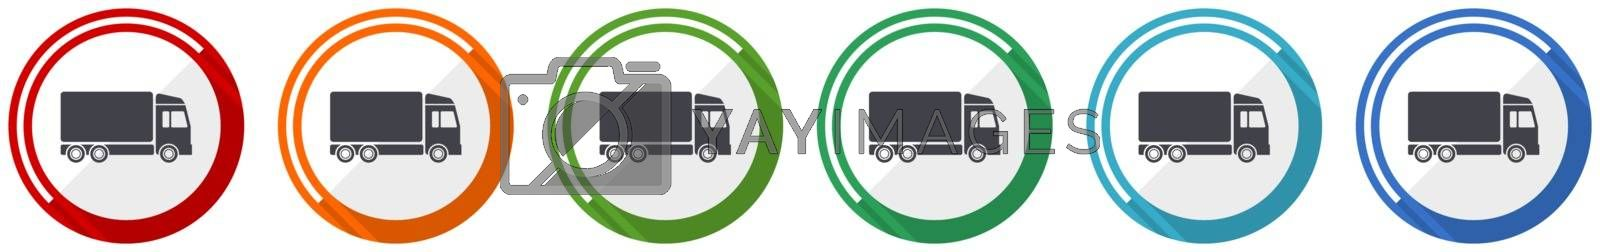 Delivery icon set, flat design vector illustration in 6 colors options for webdesign and mobile applications